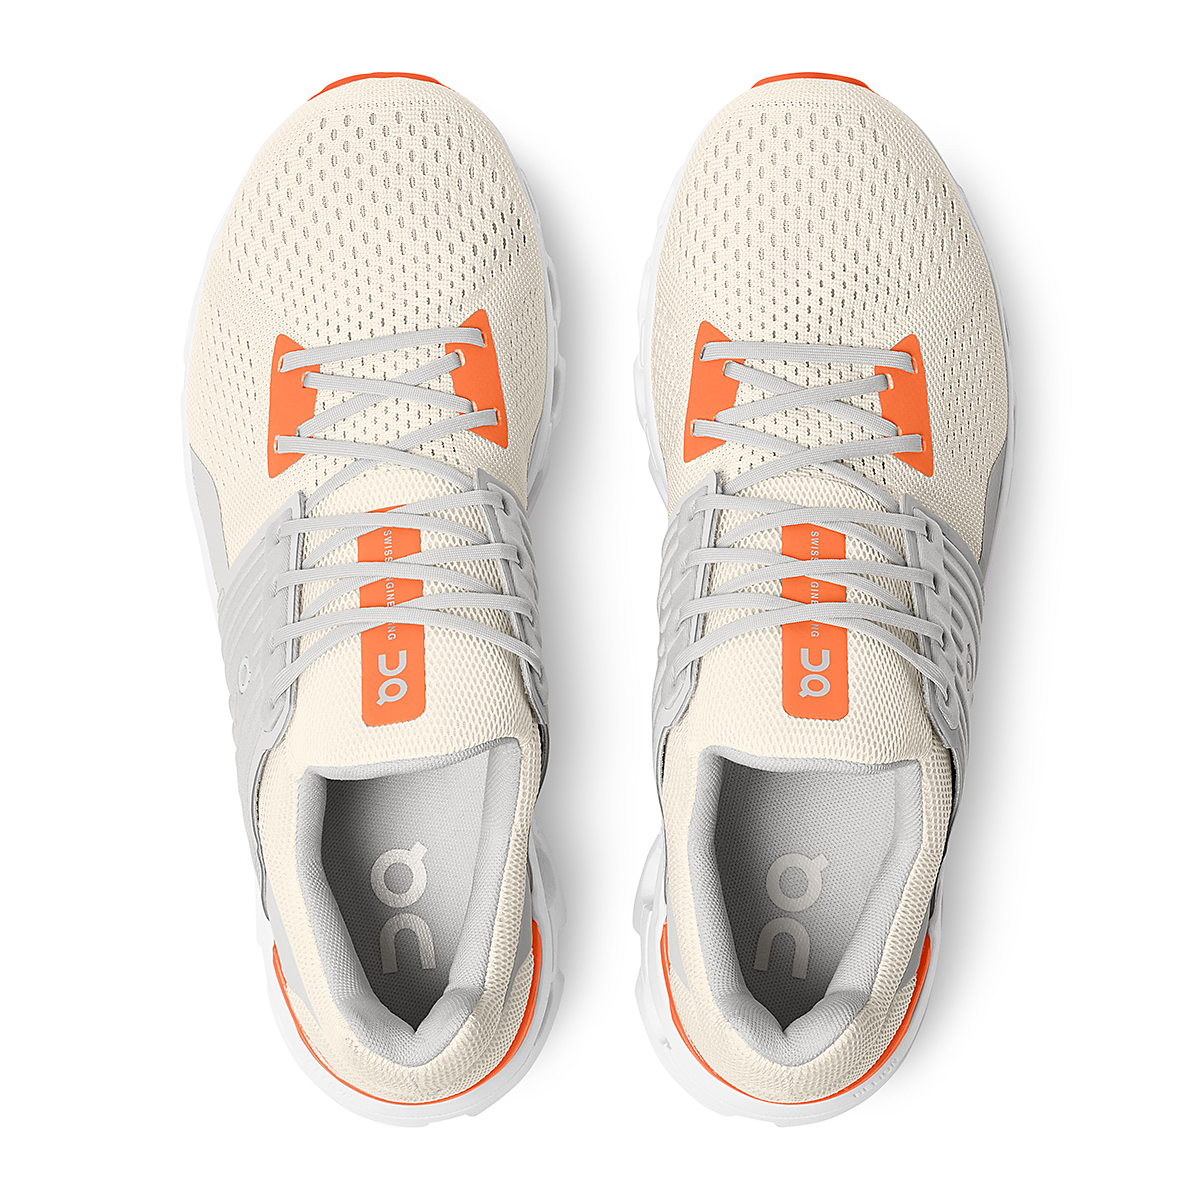 Men's On Cloudswift 2.0 Running Shoe - Color: White | Flame - Size: 7 - Width: Regular, White | Flame, large, image 5